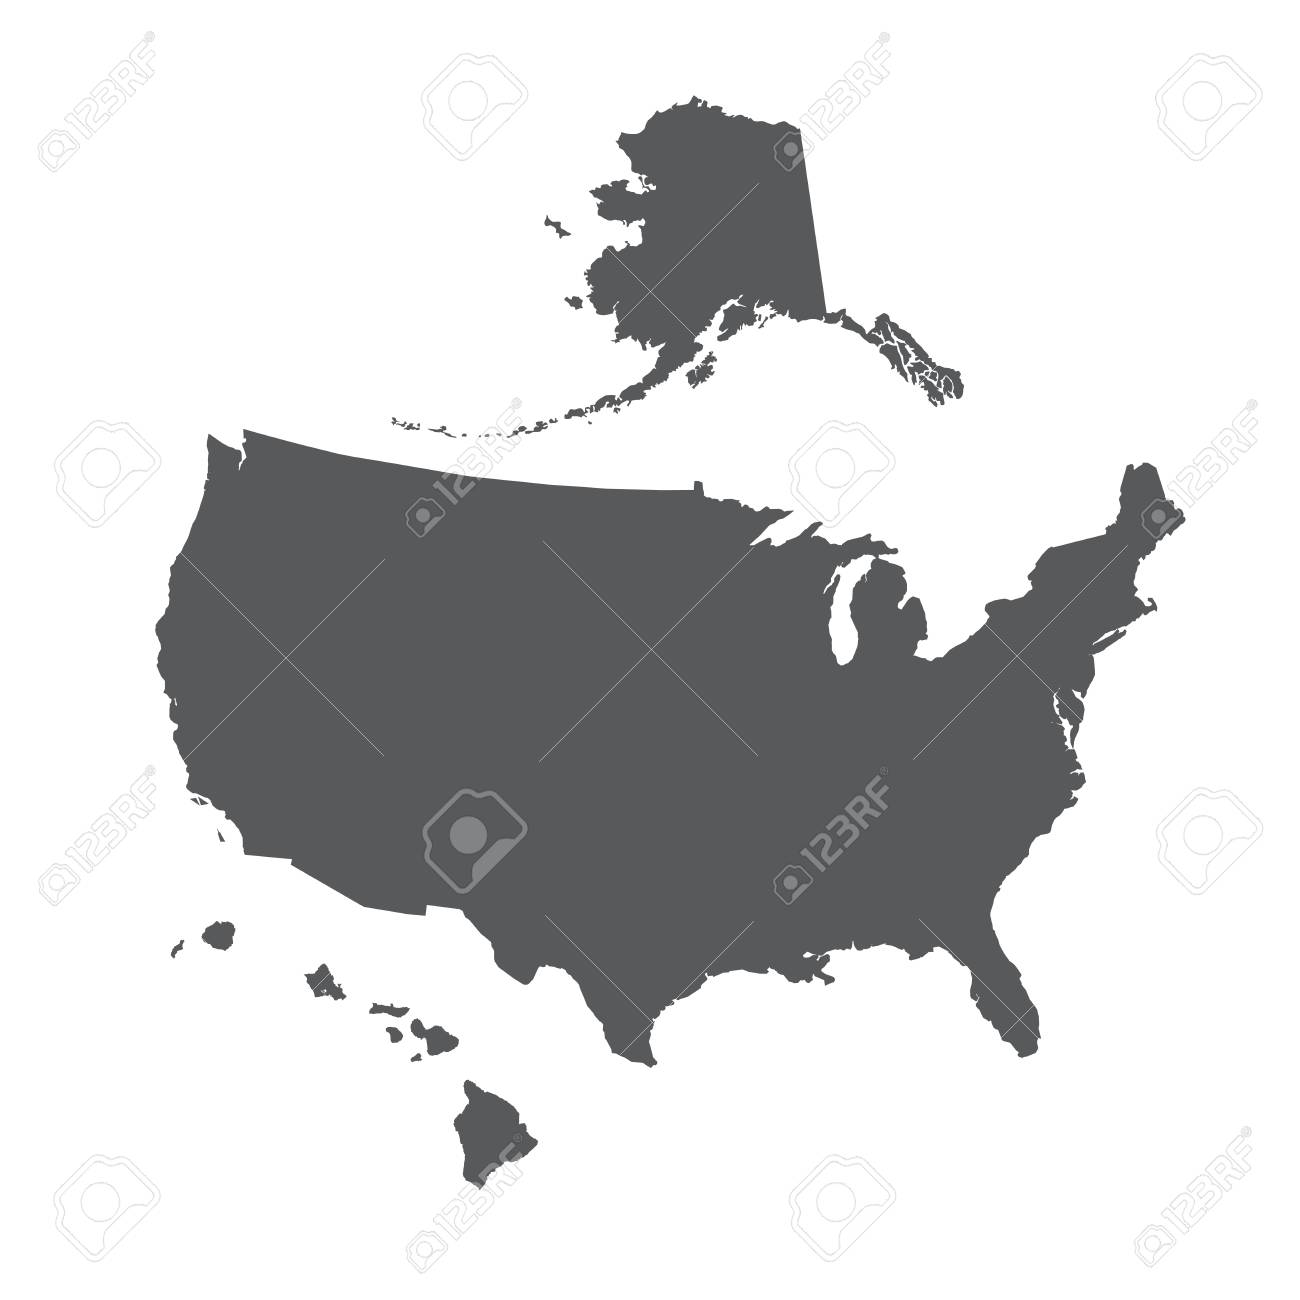 USA map outline with Alaska and Hawaii islands